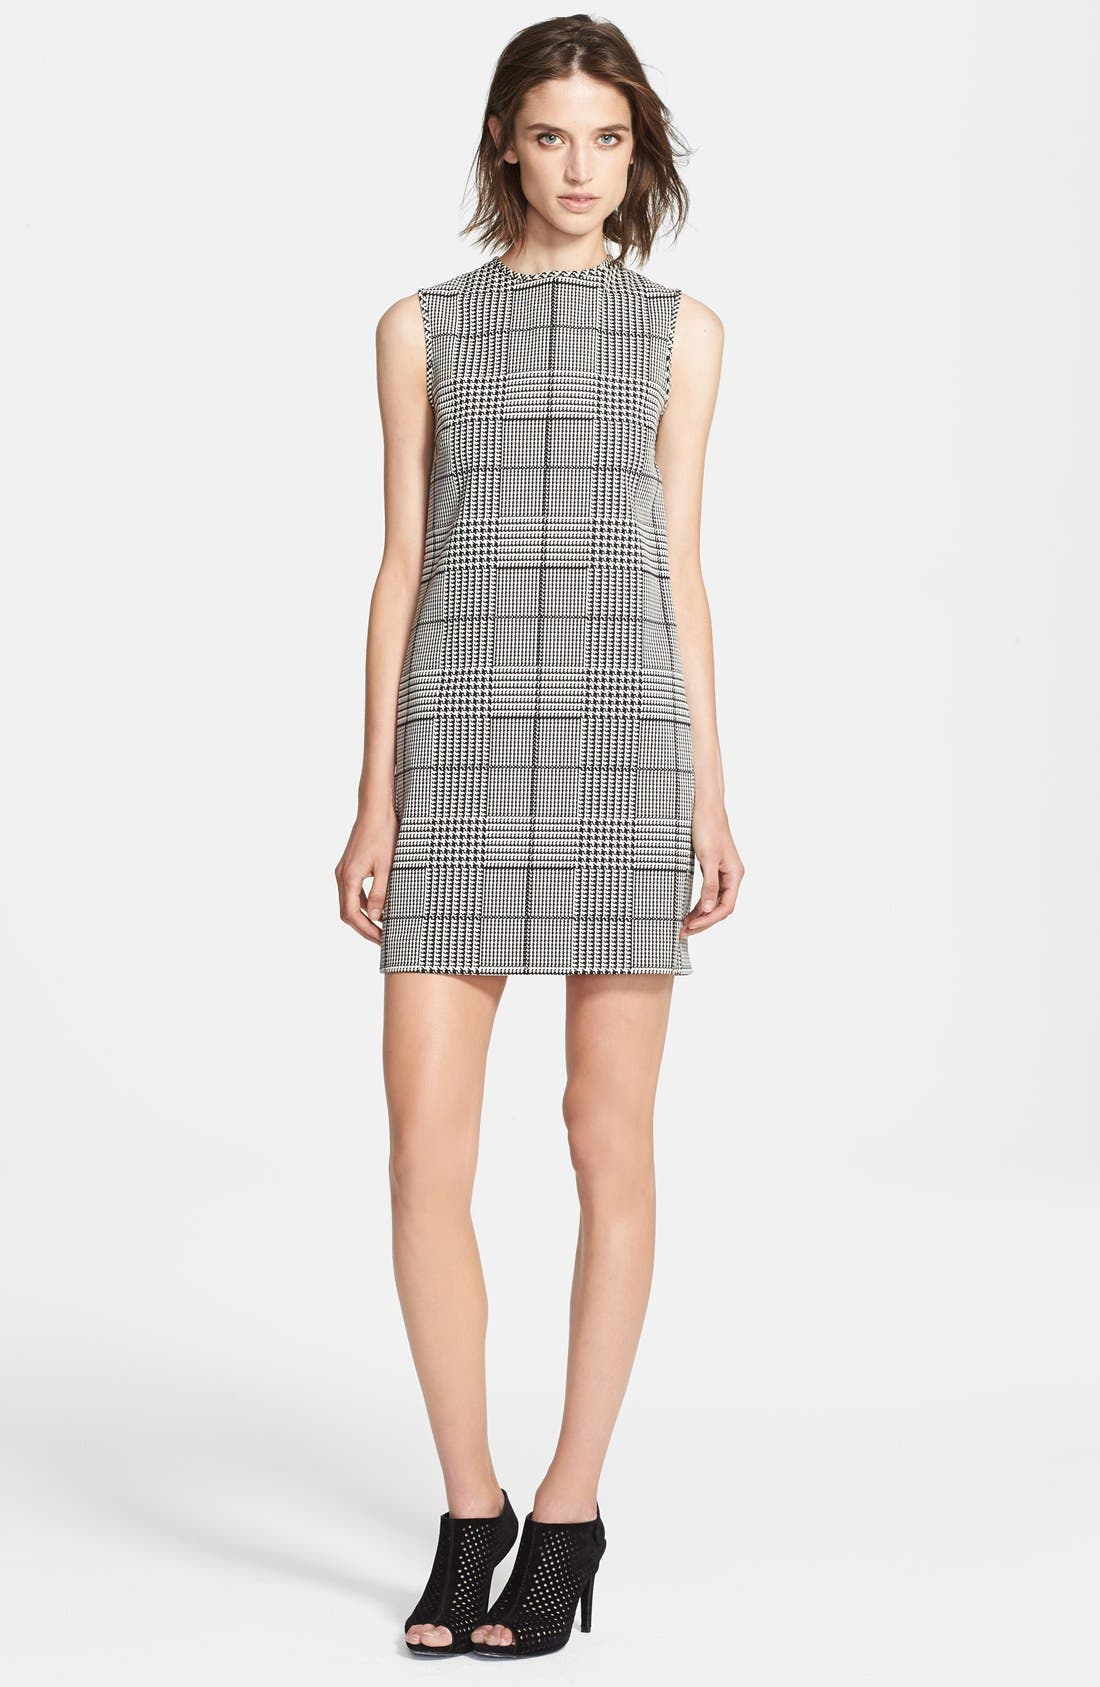 'Adraya' Houndstooth Cotton Blend Shift Dress,                             Main thumbnail 1, color,                             020